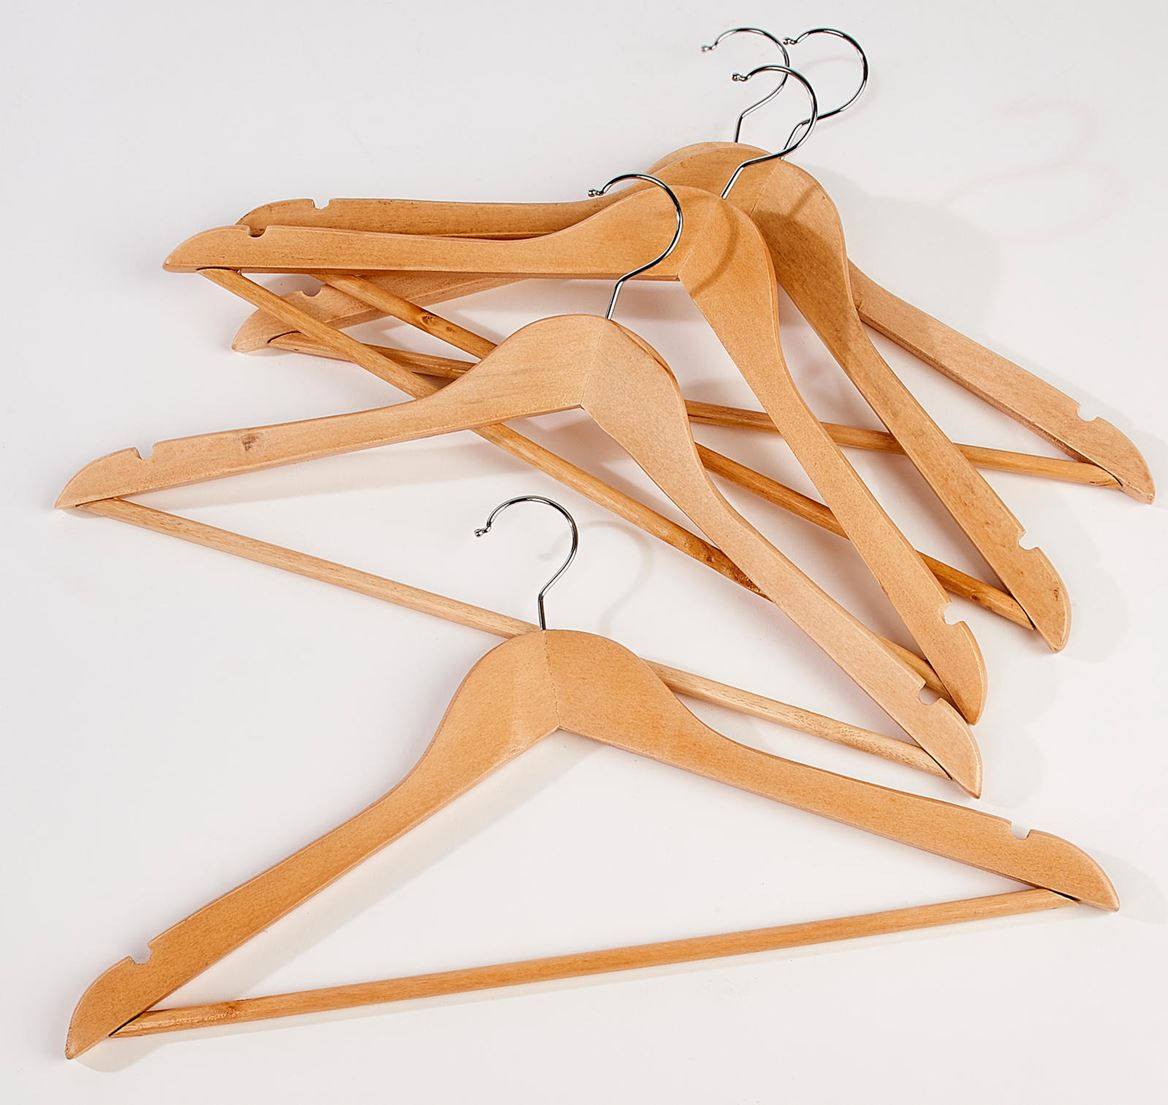 NEW WOOD Kleerhangers set van 5 naturel H 23 x B 44,5 x D 1,2 cm_new-wood-kleerhangers-set-van-5-naturel-h-23-x-b-44,5-x-d-1,2-cm